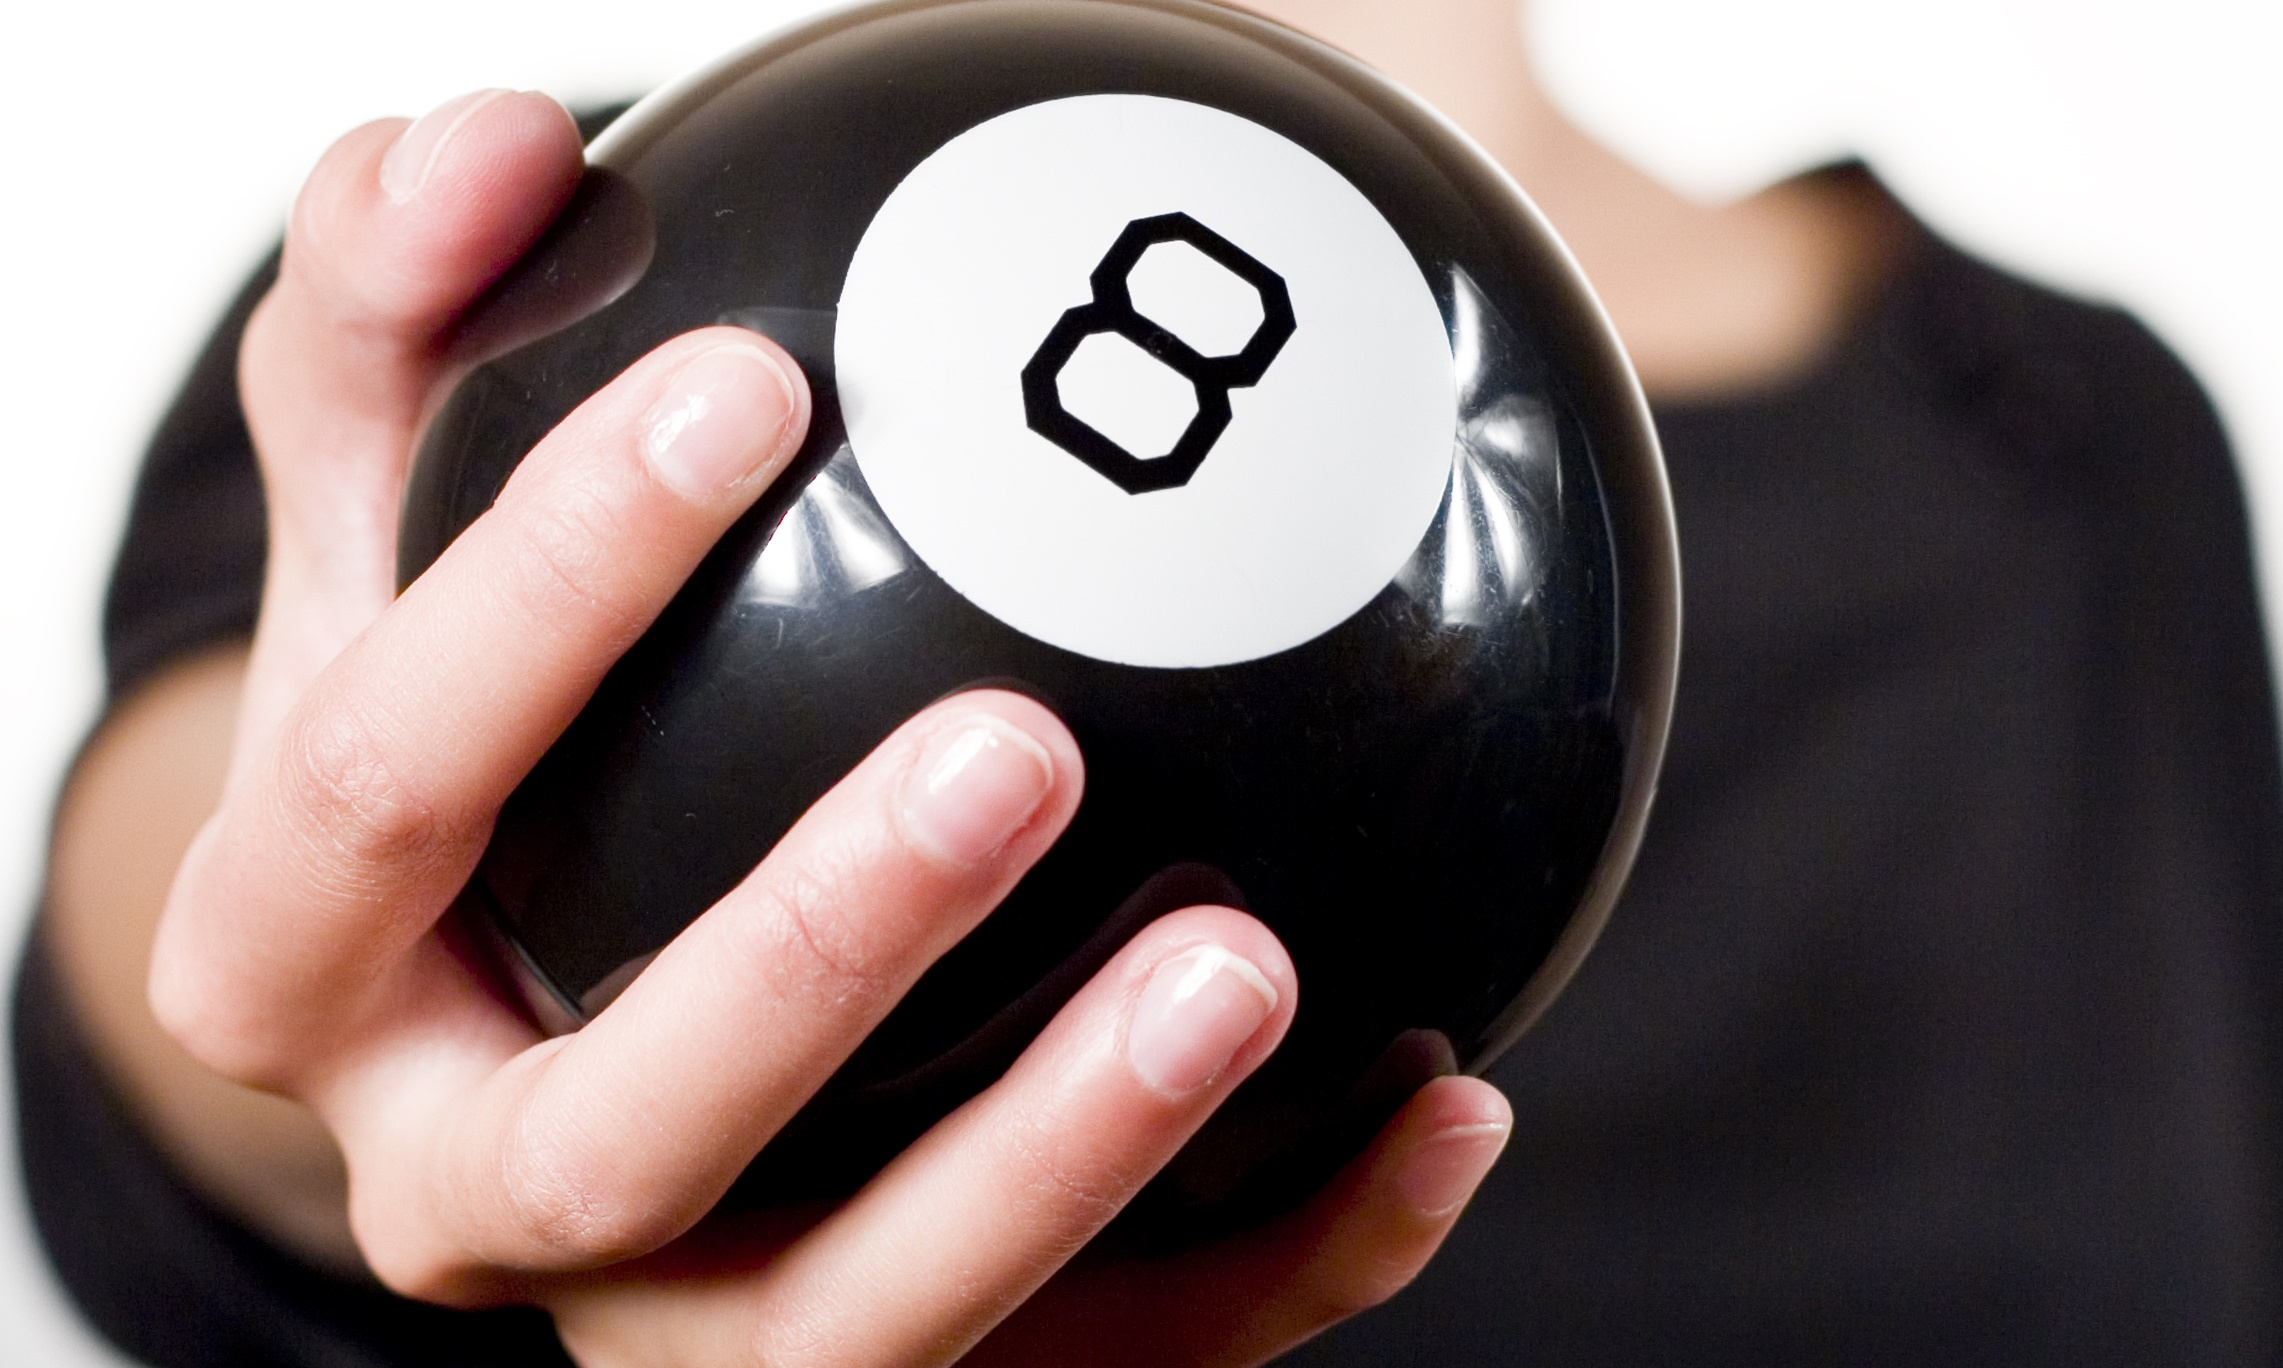 Are You Using a Magic 8 Ball to Hire Top Talent?